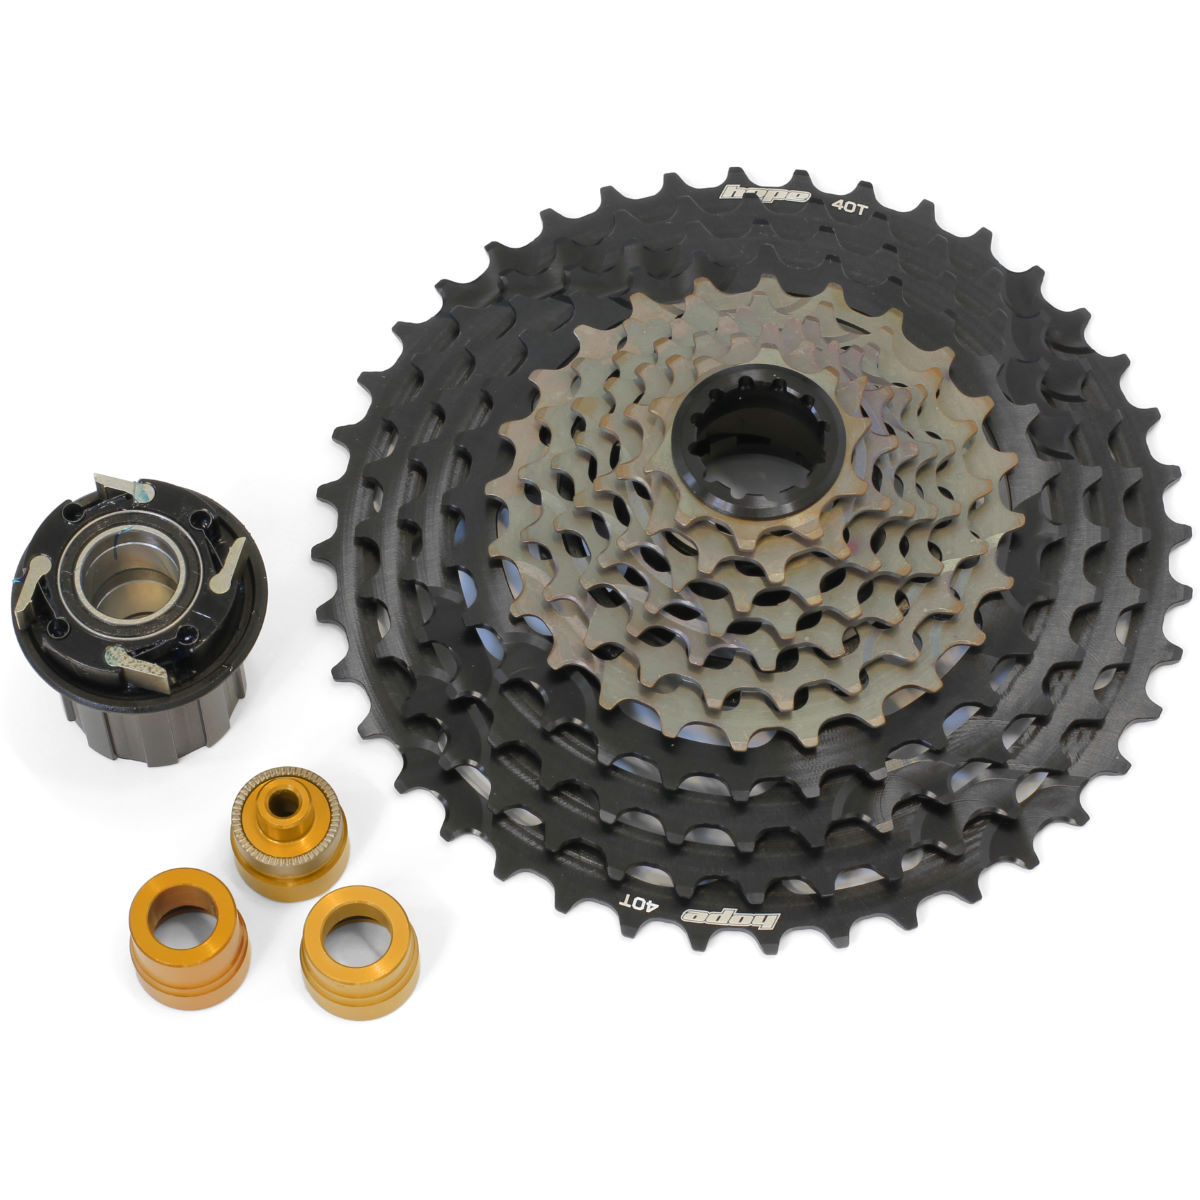 Hope 11 Speed Cassette With Evo Freehub - 10-40t 11 Speed Black